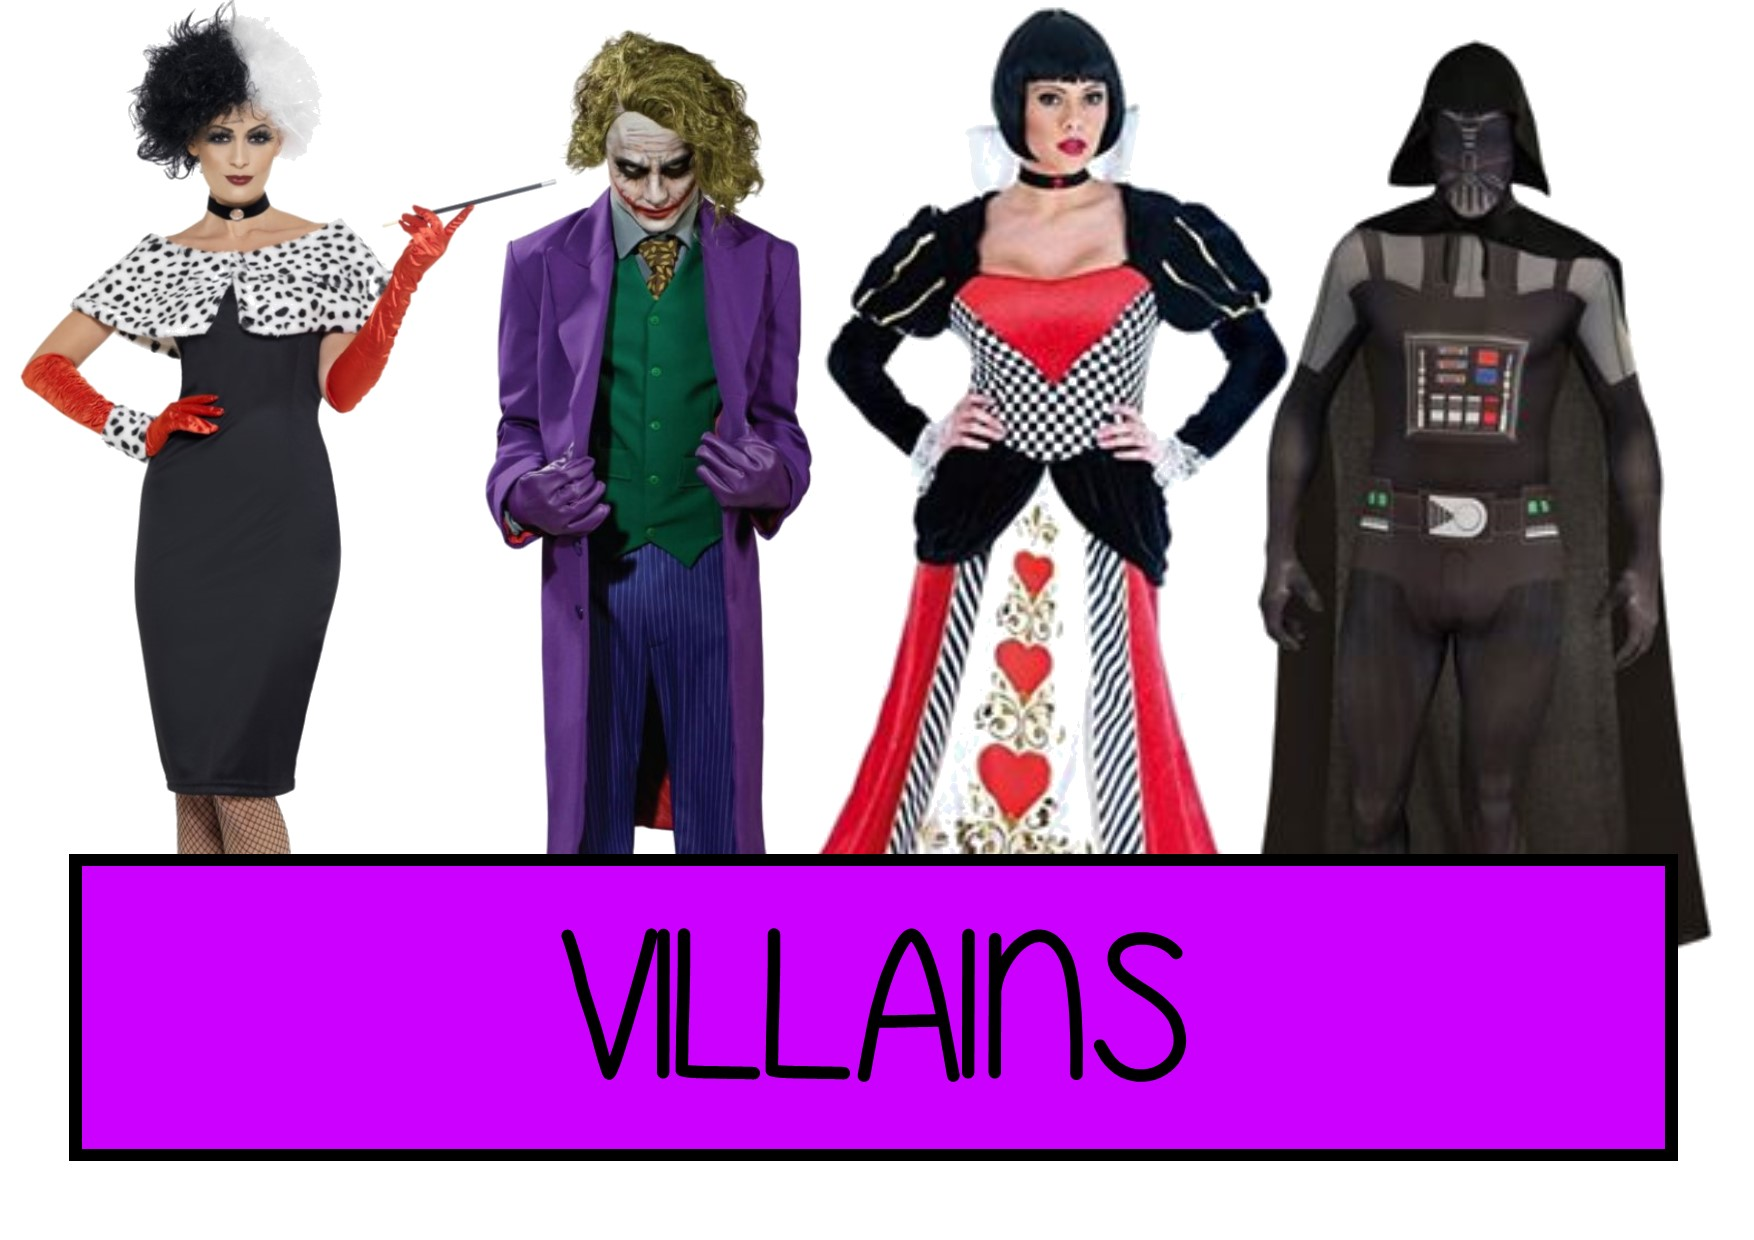 villains fancy dress ideas